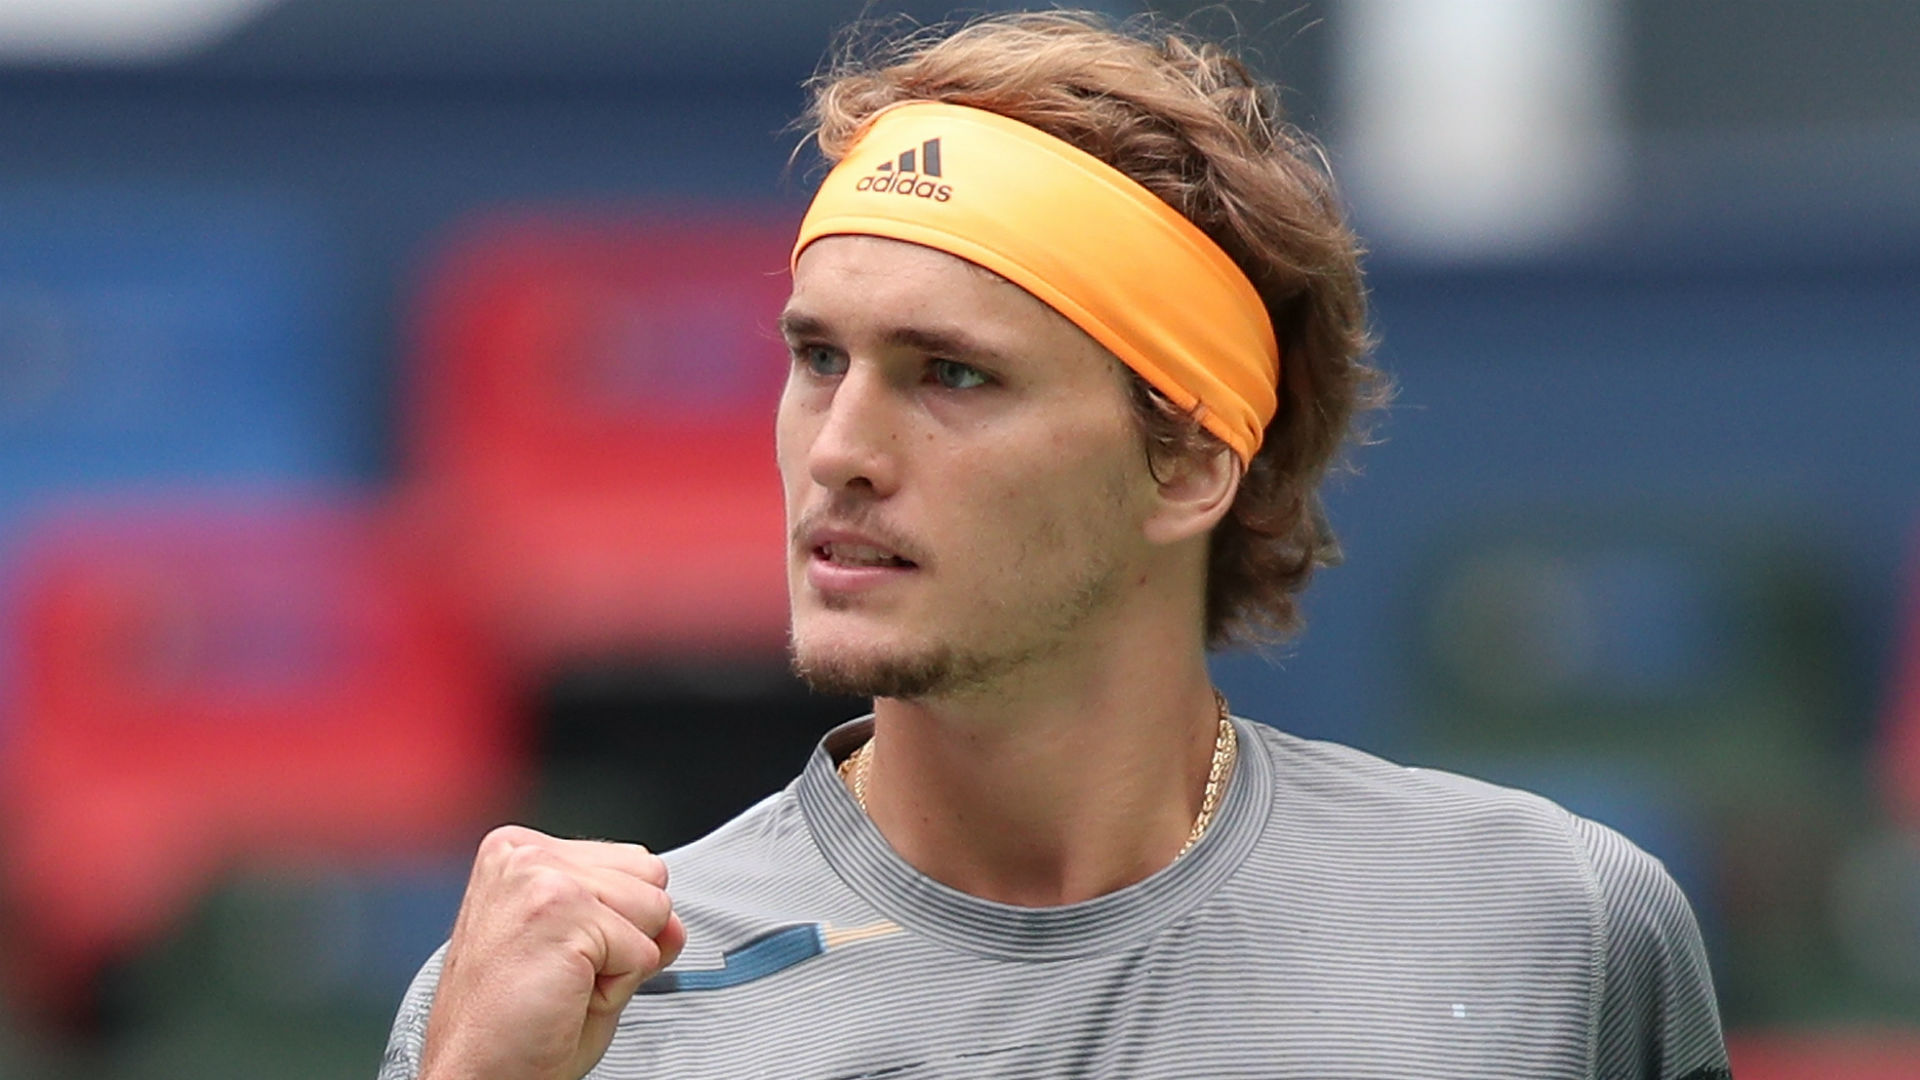 Inspired Zverev defeats frustrated Federer in Shanghai